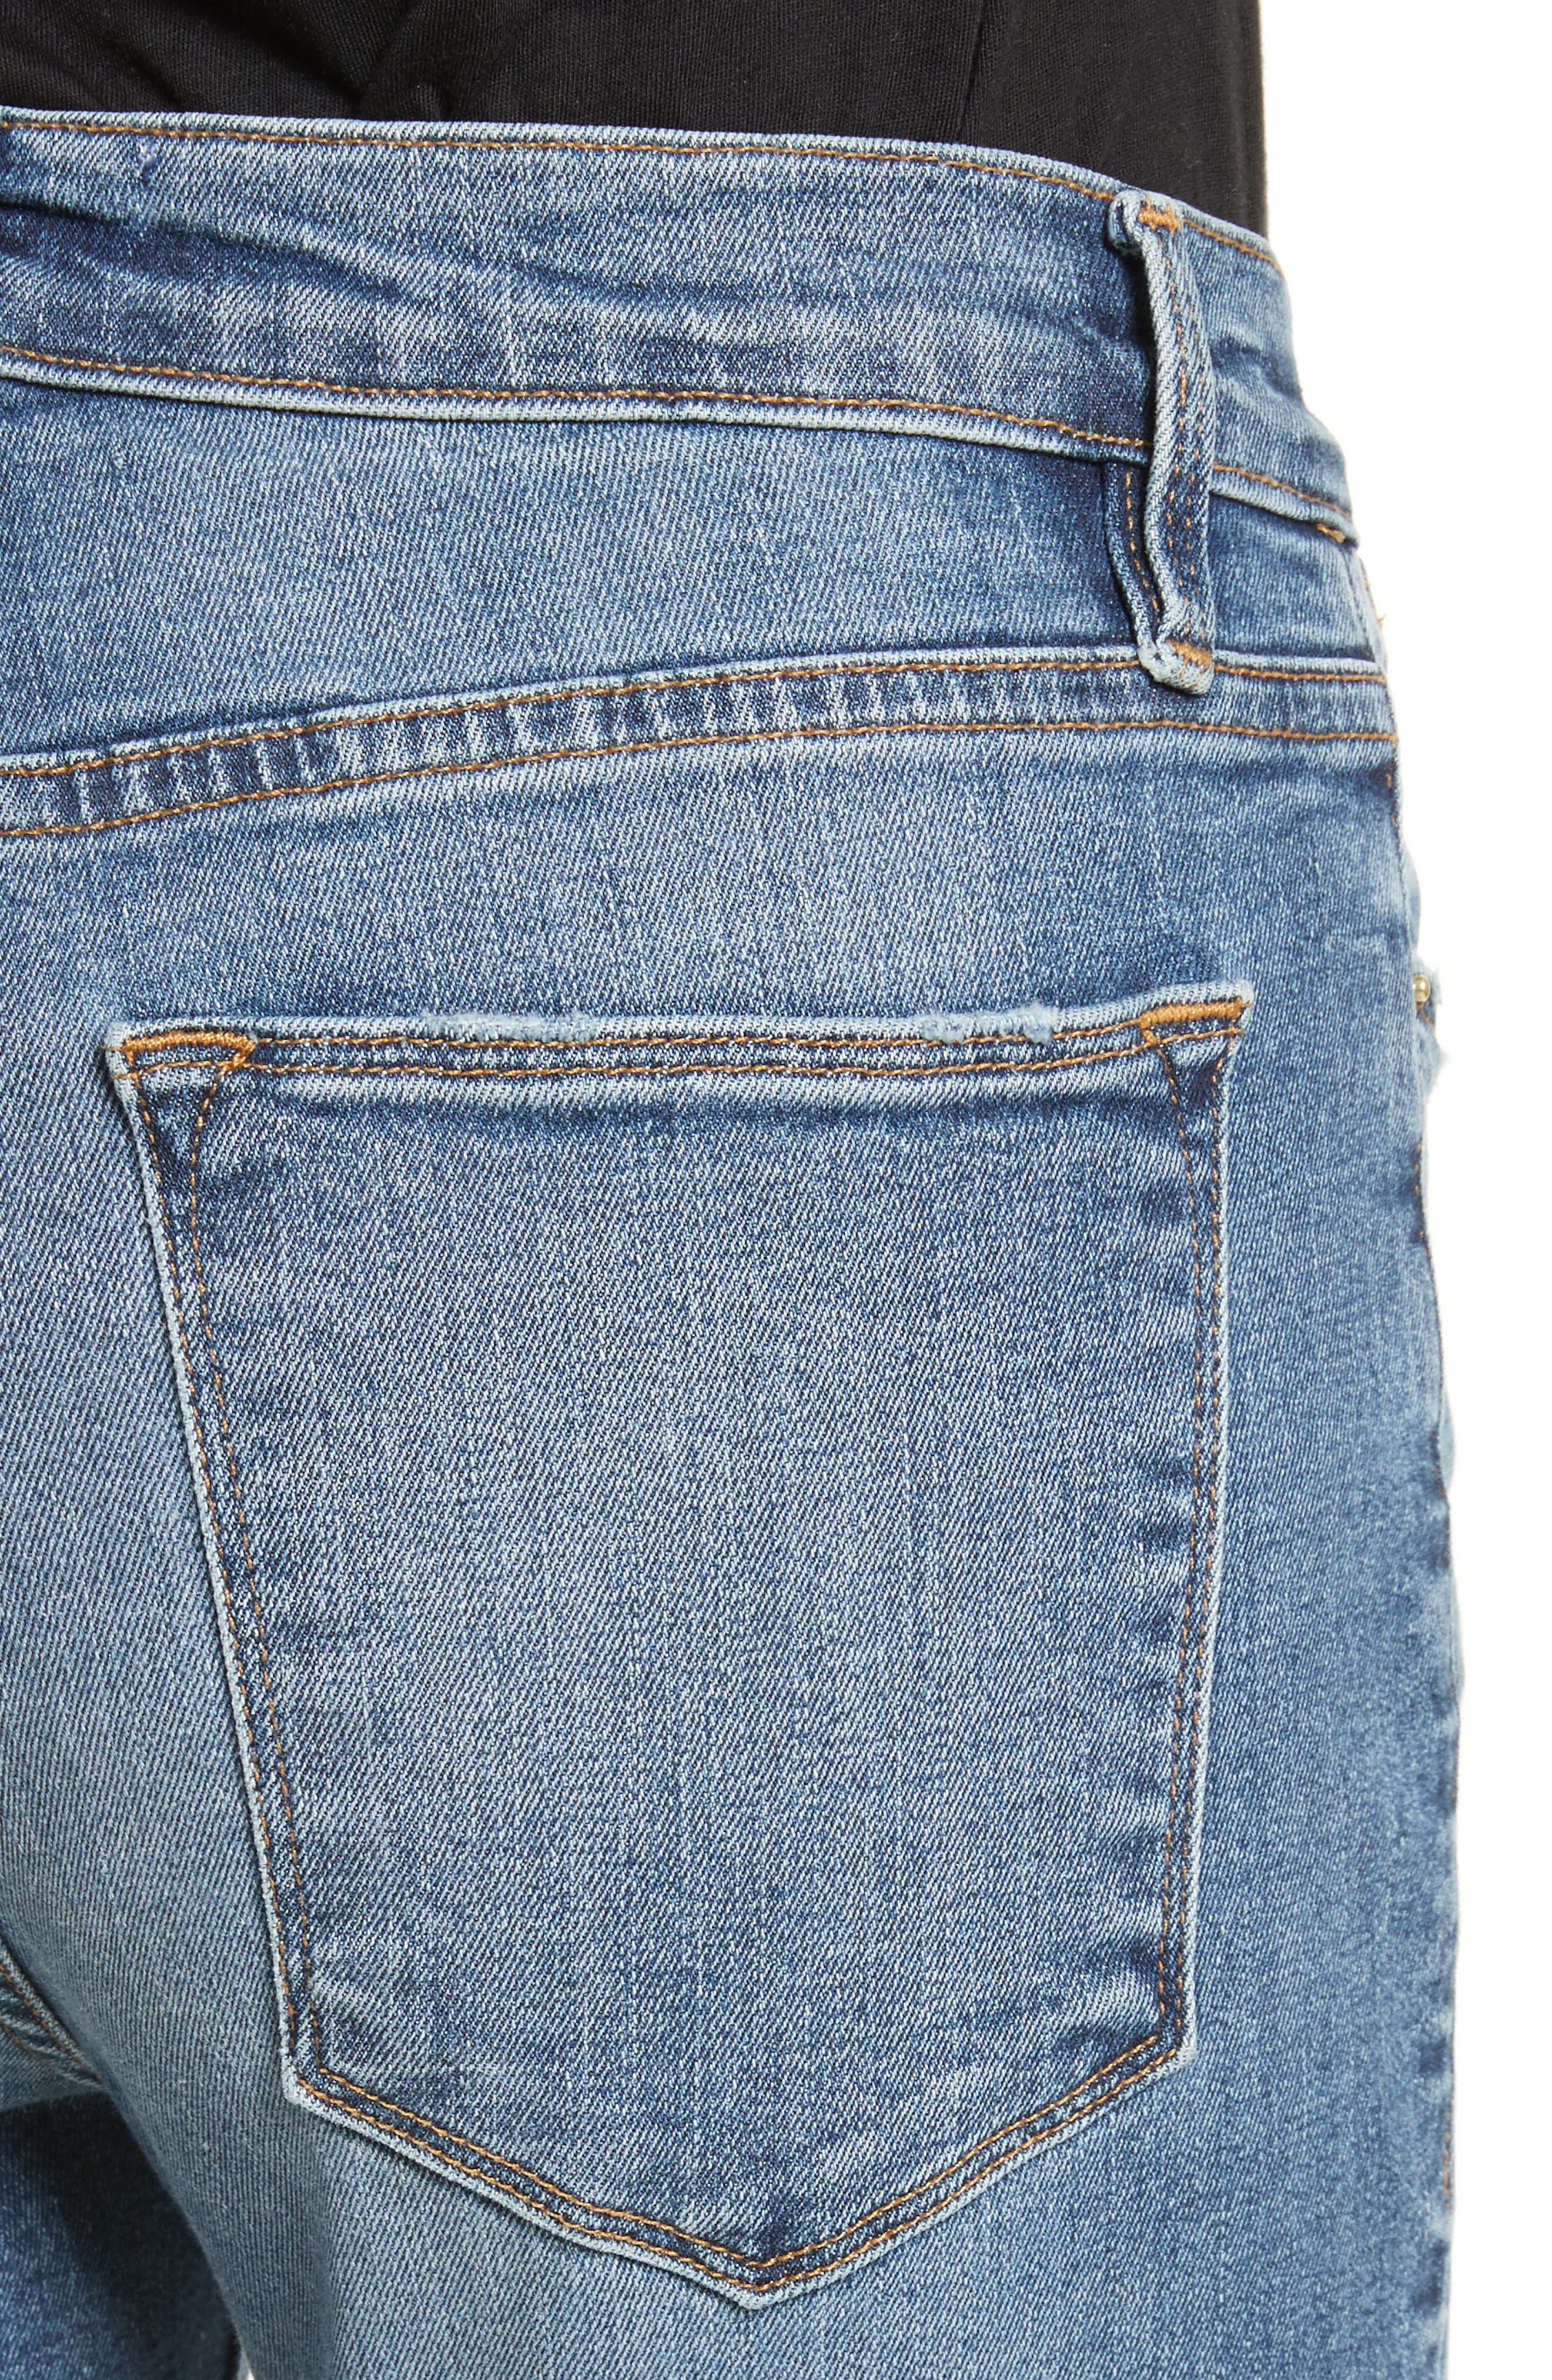 Le High Straight High Waist Crop Jeans,                             Alternate thumbnail 5, color,                             Whitwell